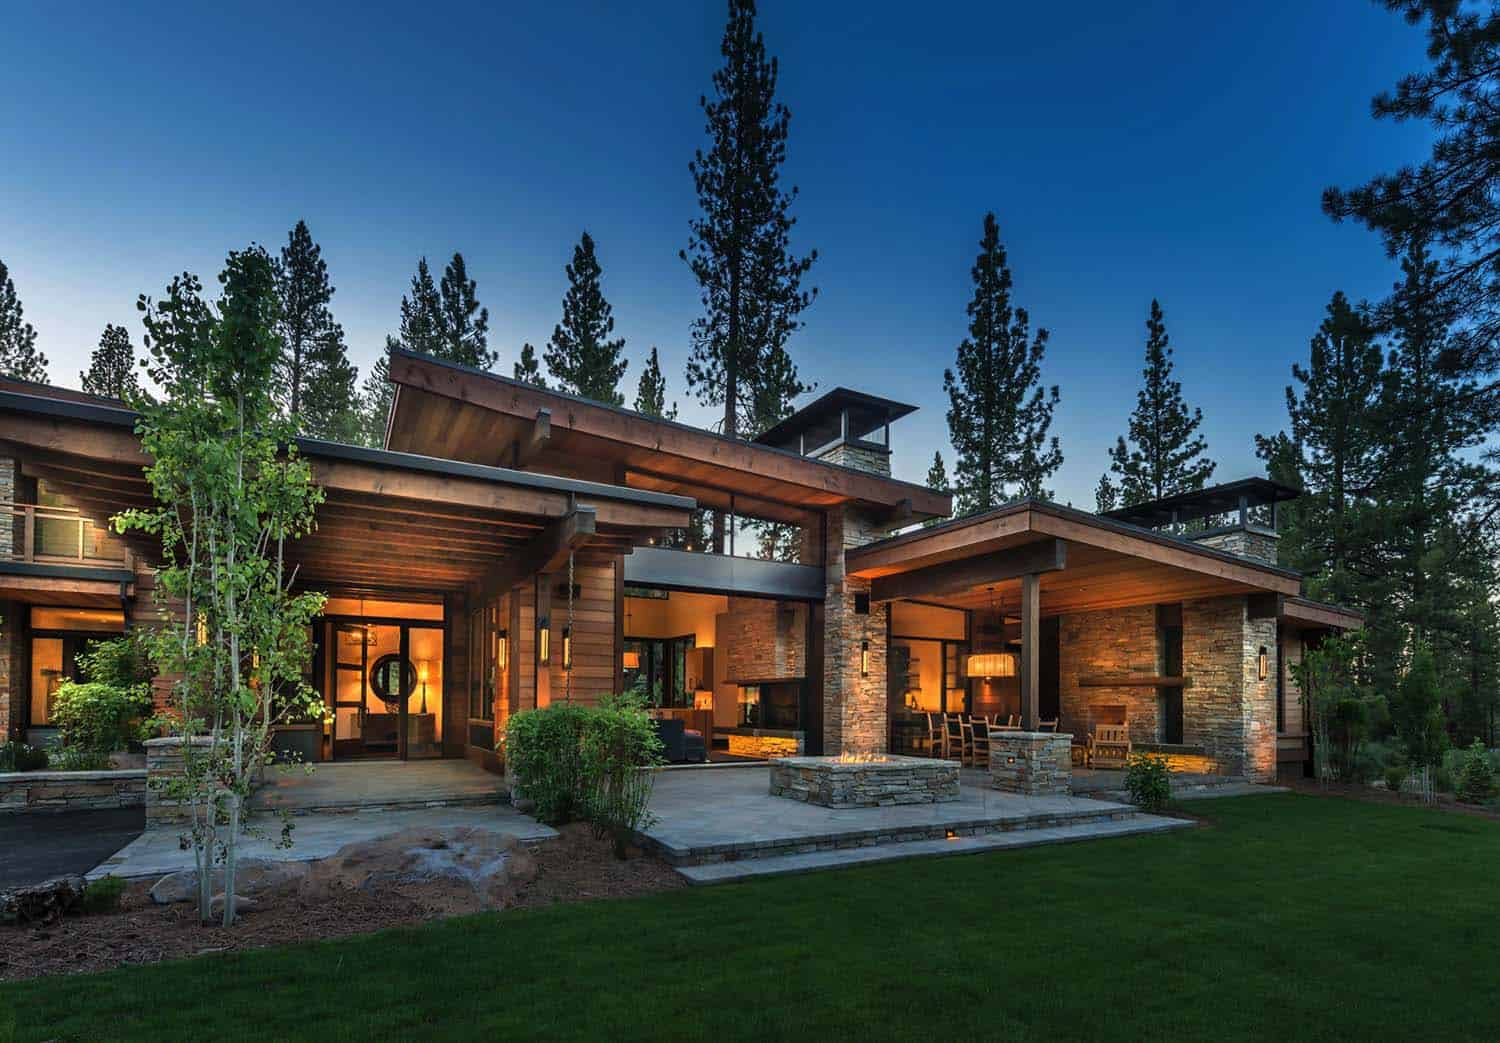 Mountain Modern Home-Ryan Group Architects-02-1 Kindesign